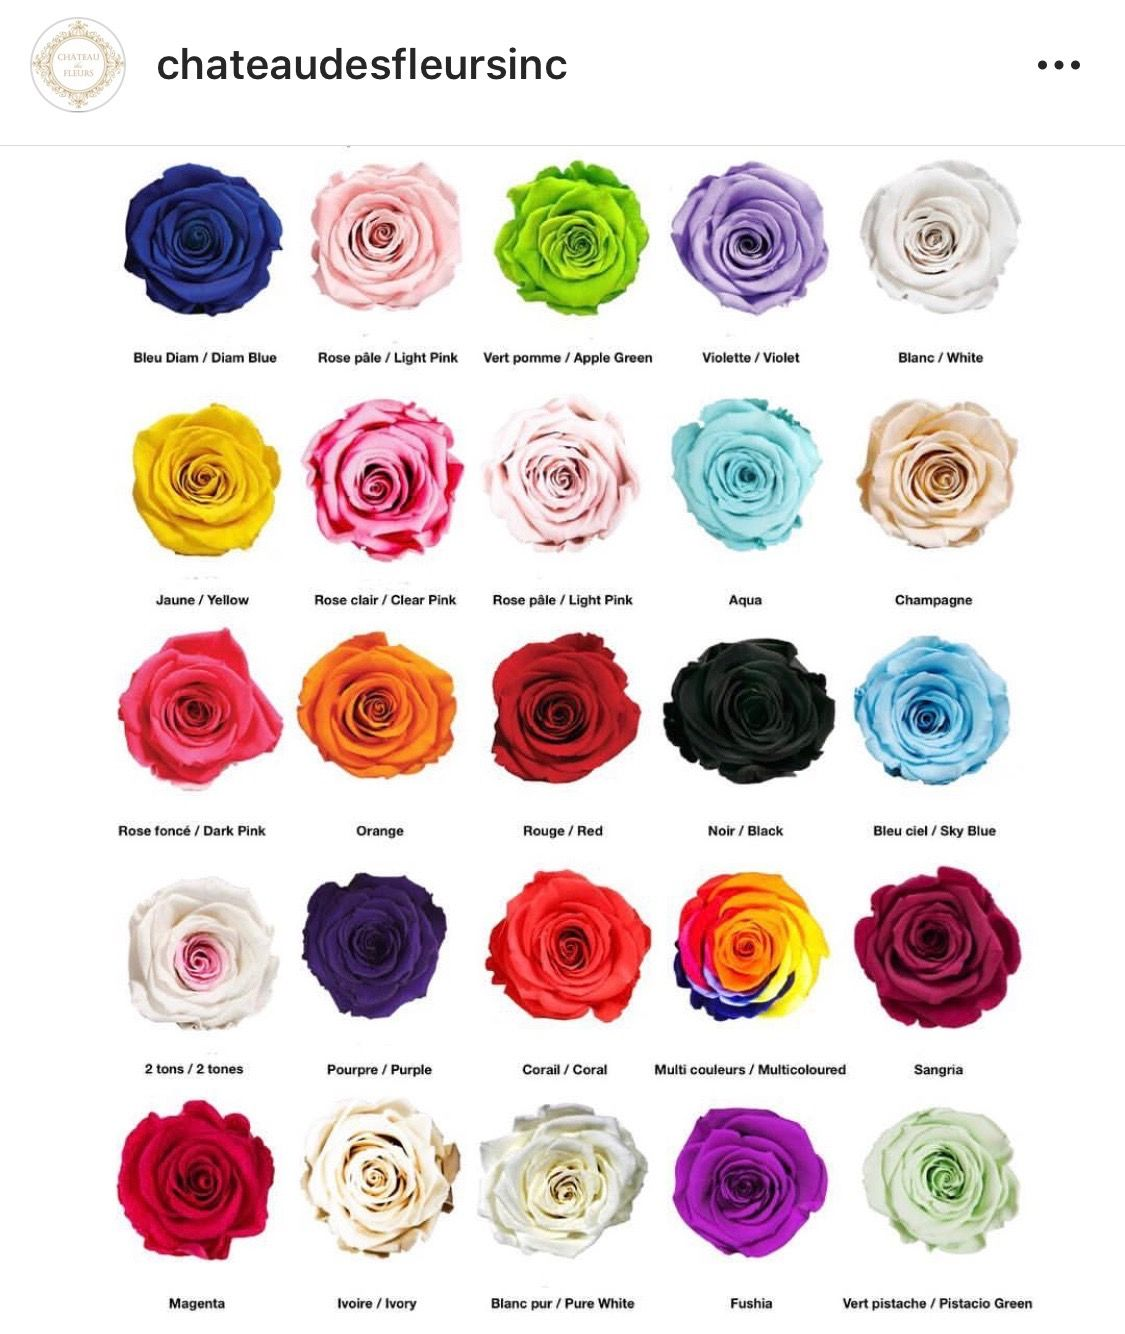 Pin By Crystal Gail Paxson Hill On Roses Rose Color Meanings Flower Meanings Flower Names